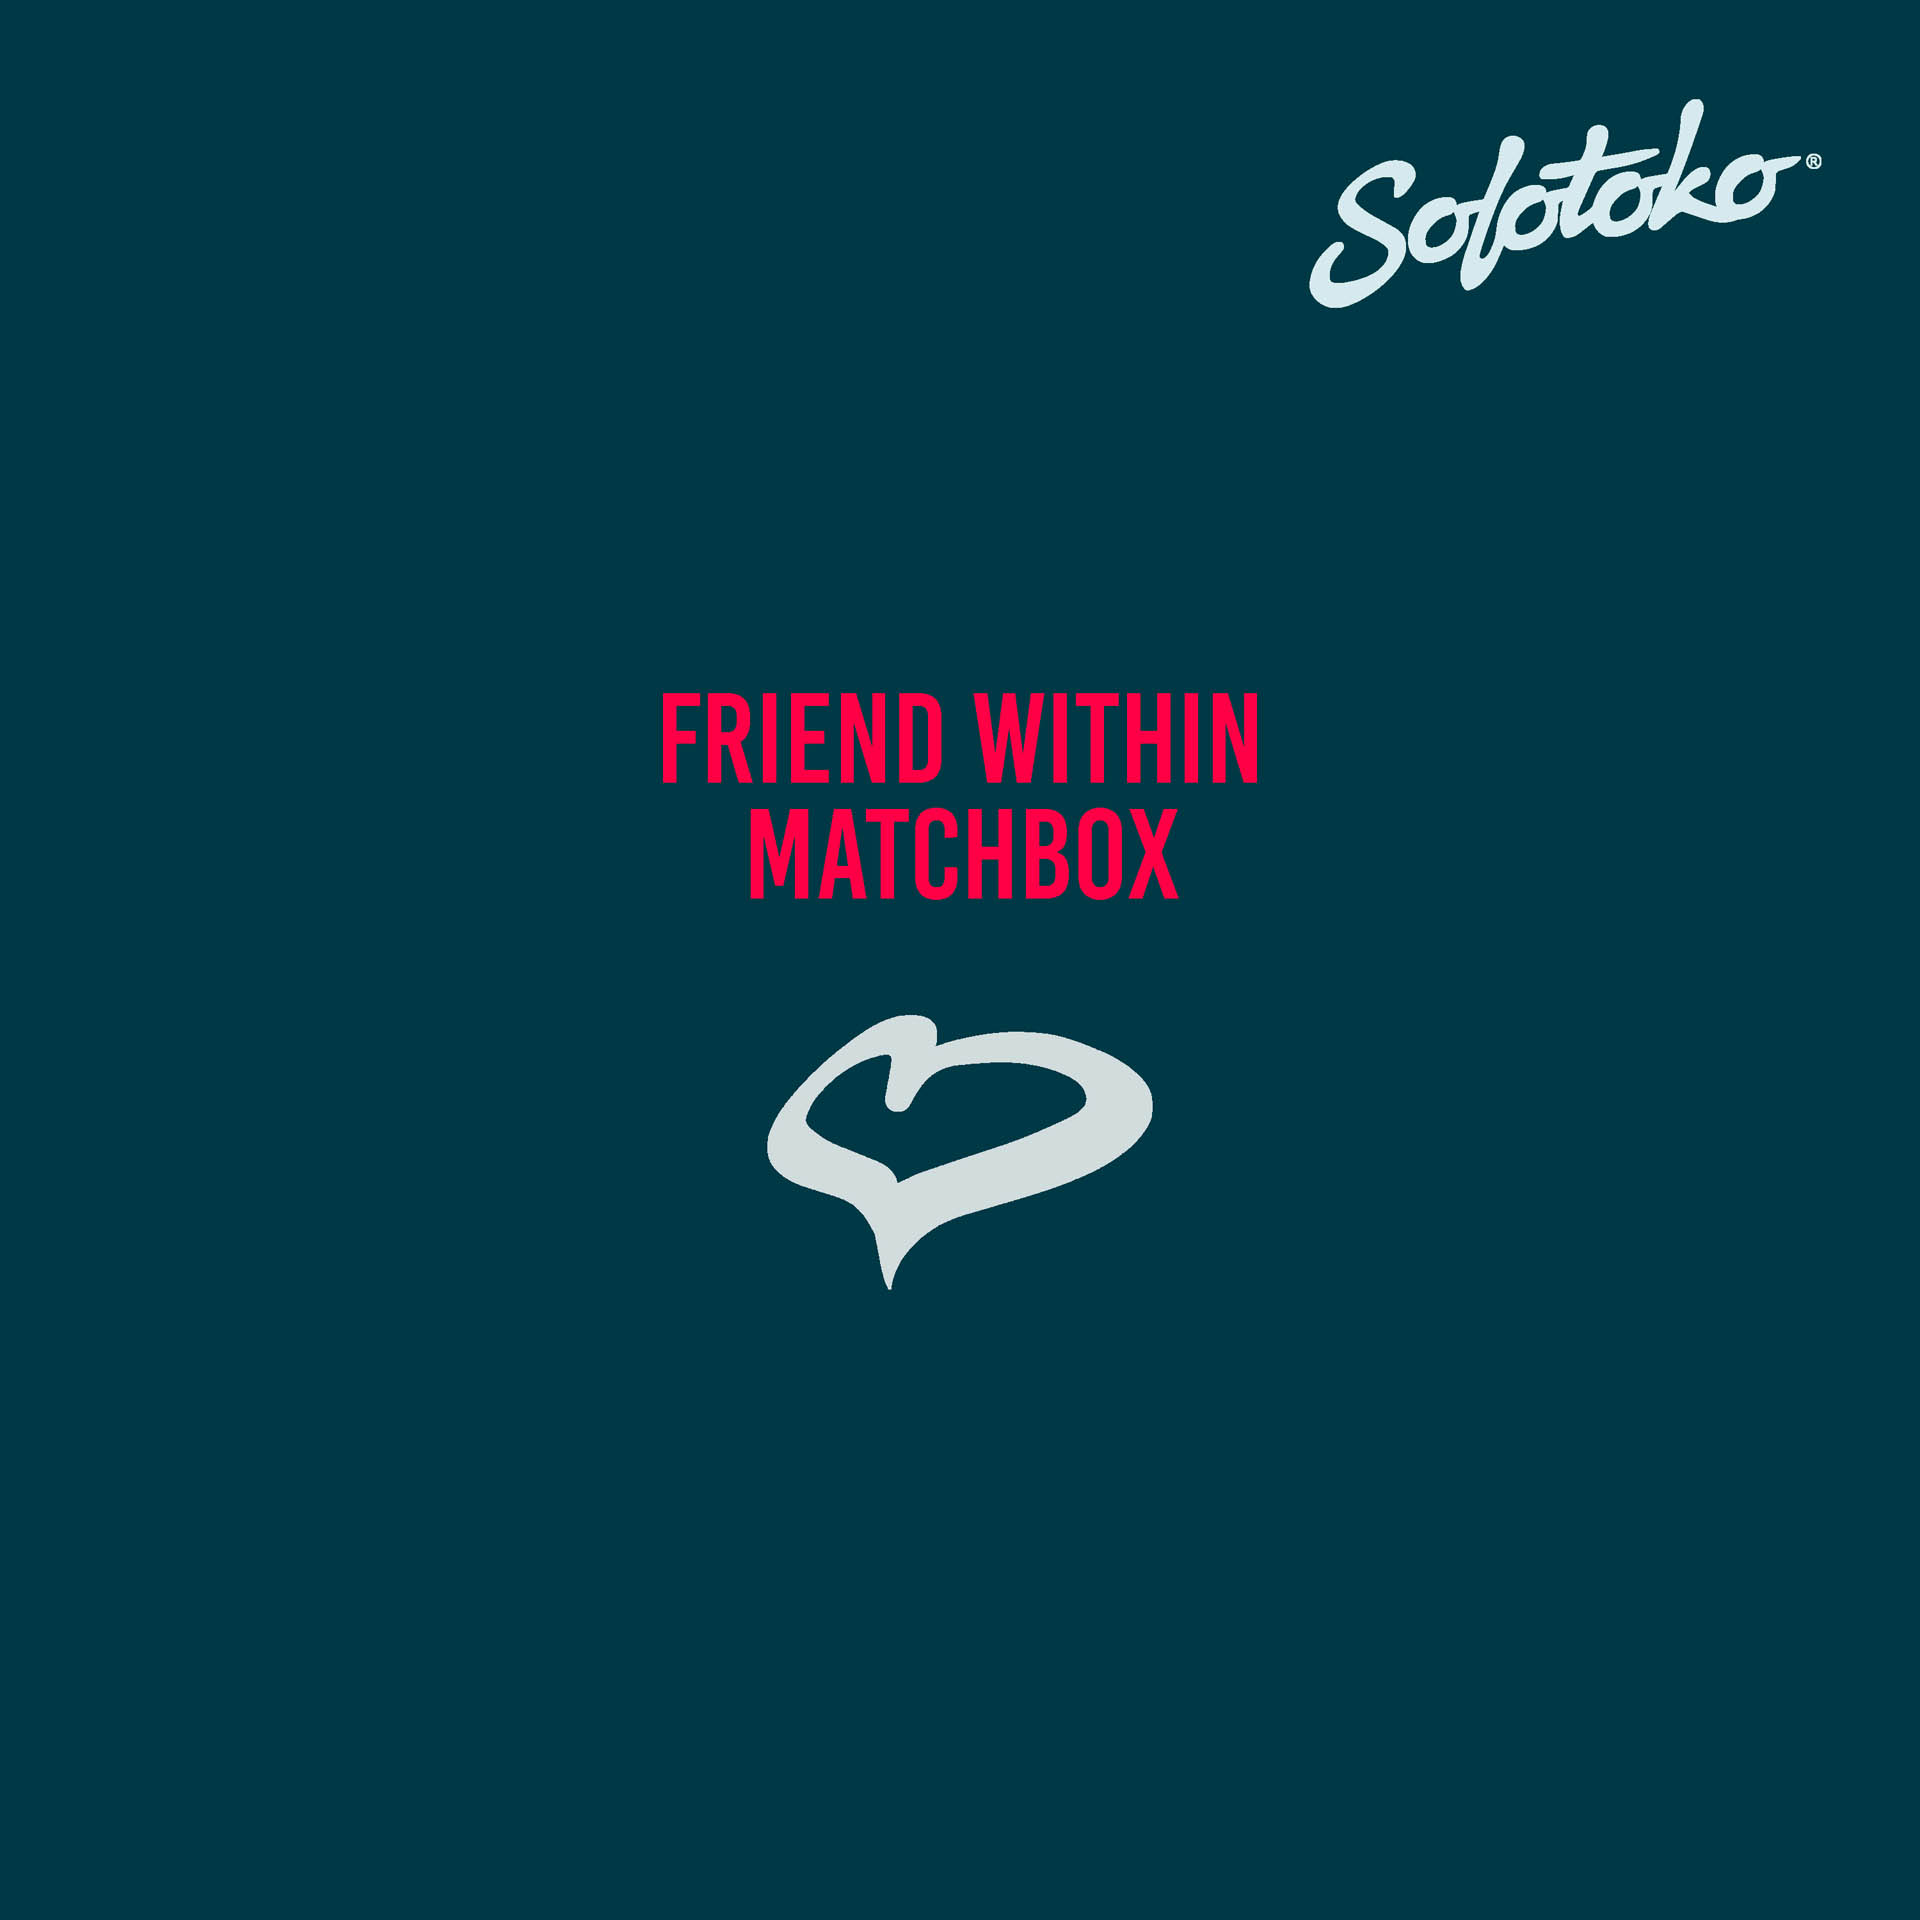 FRIEND WITHIN - MATCHBOX